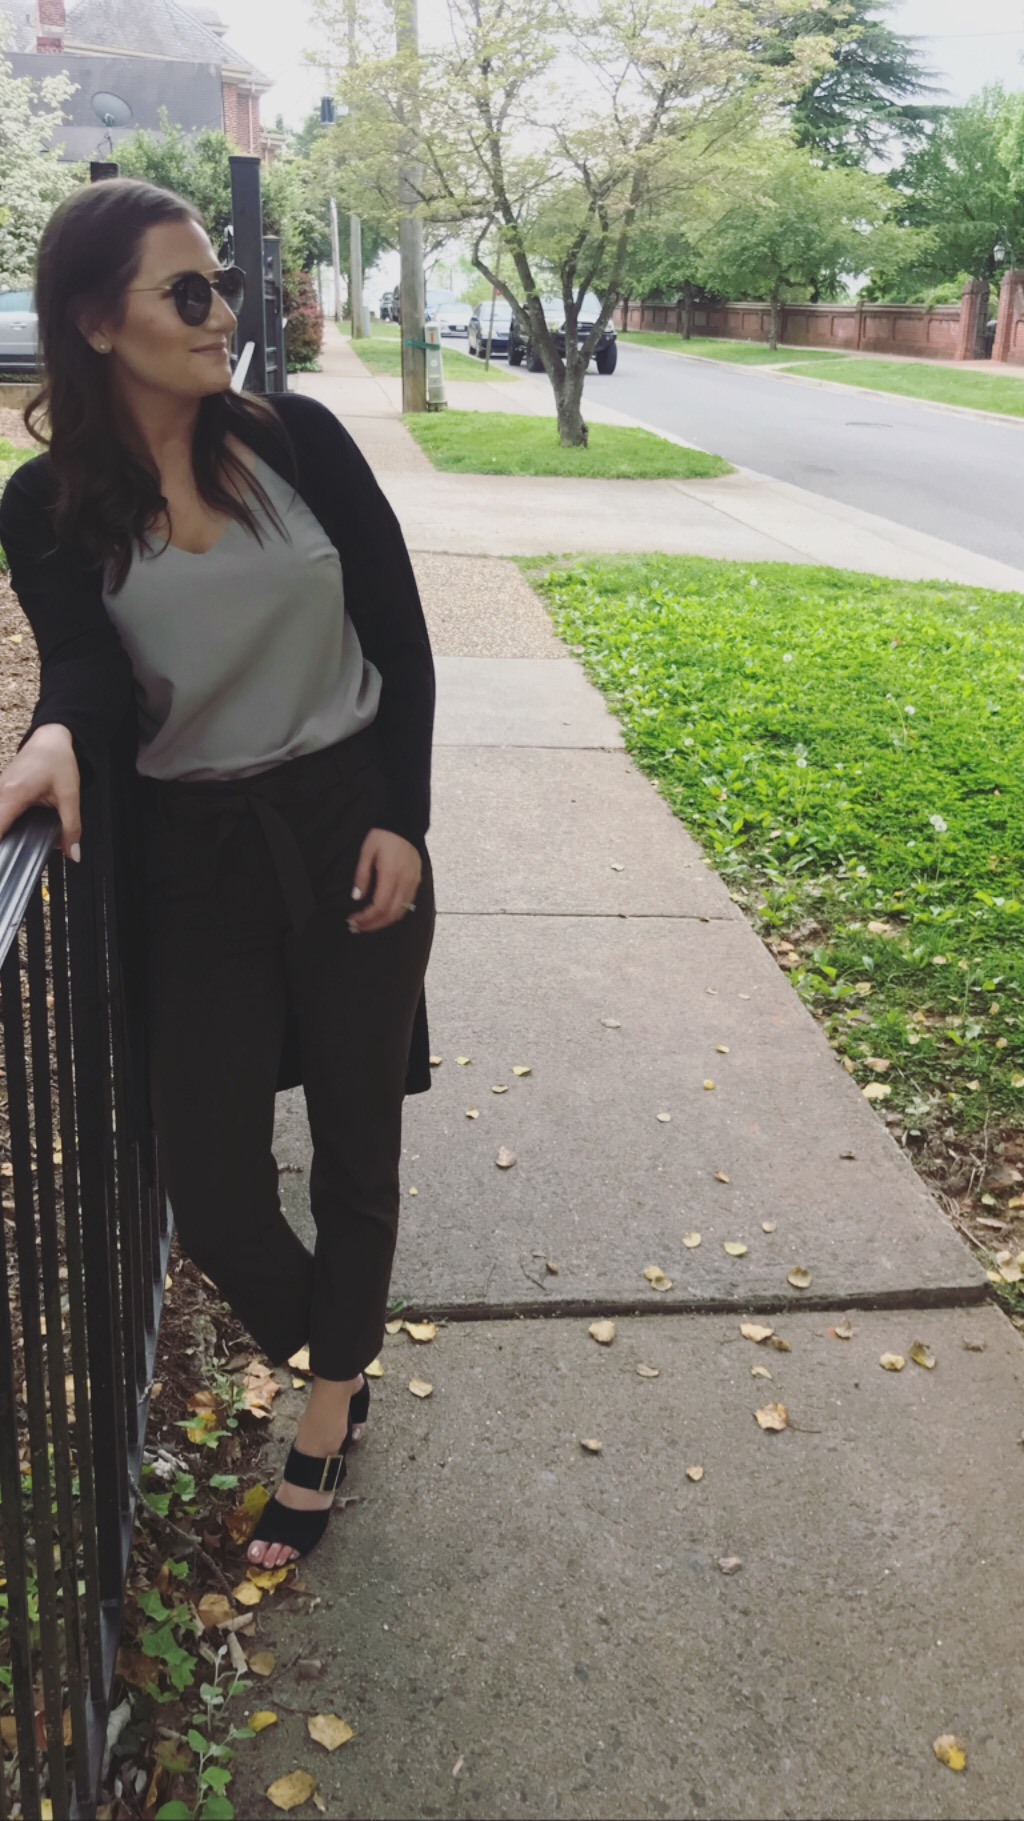 Well, it is spring. - Another Banana Republic piece I'm obsessed with is their V-Neck tanks. They are perfect for under blazers, sweaters, and on their own for happy hour!